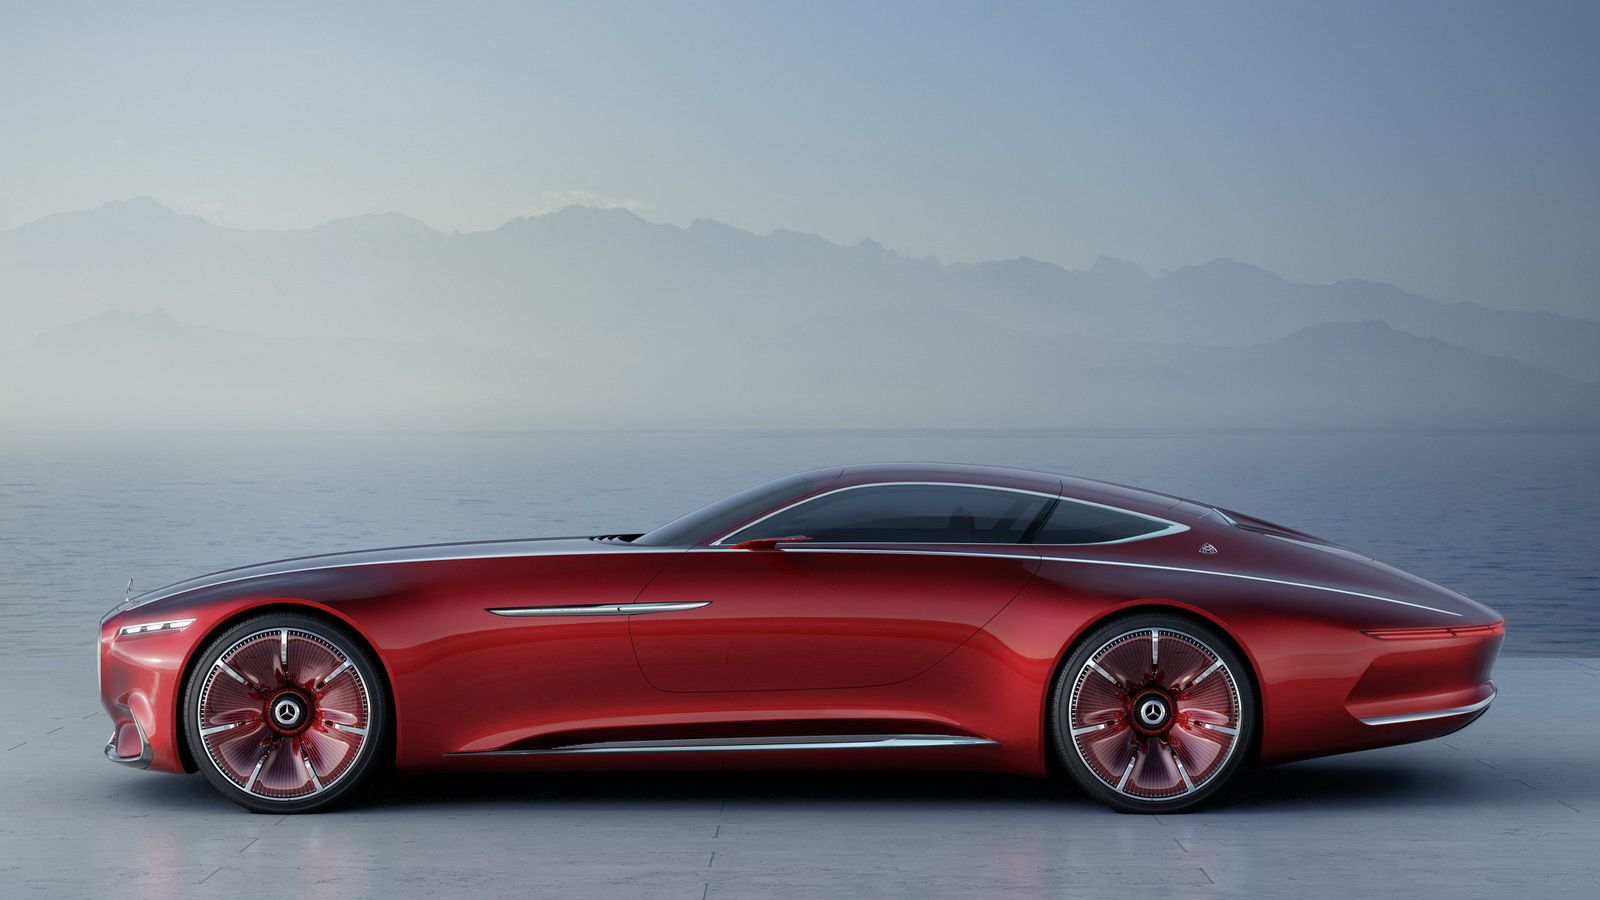 New Vision Mercedes Maybach 6 Surfaces Online And Looks Stunning